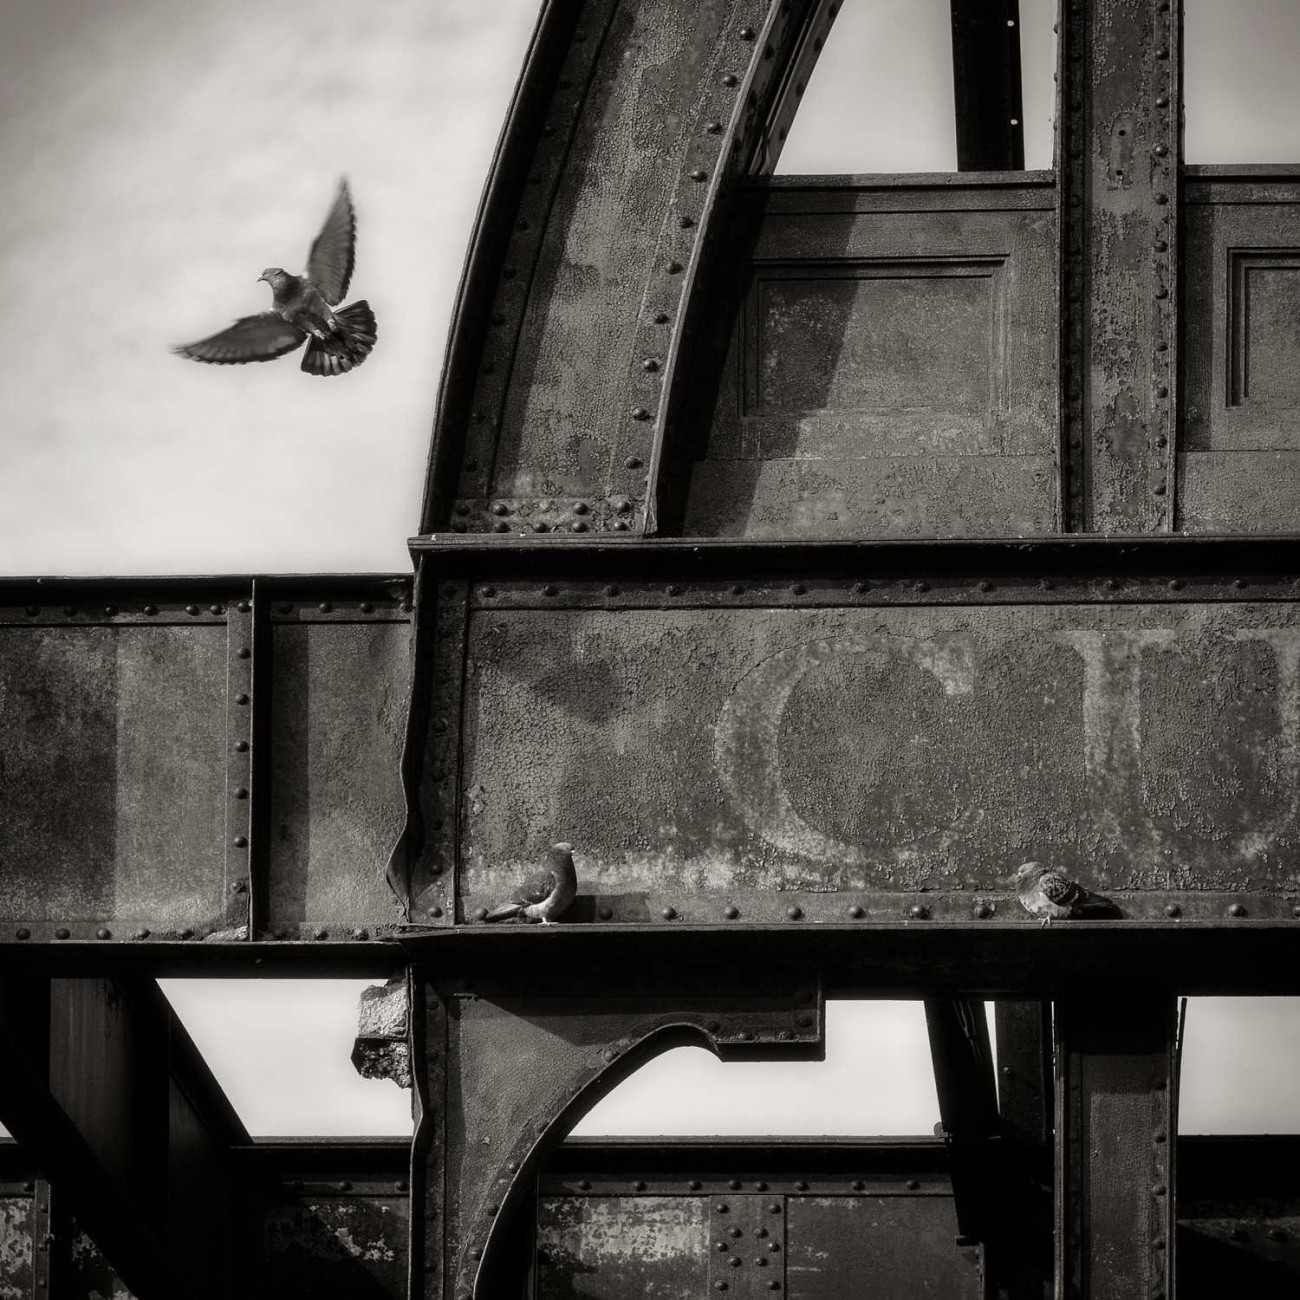 Steel pier skeleton and pigeon, New York, 2013